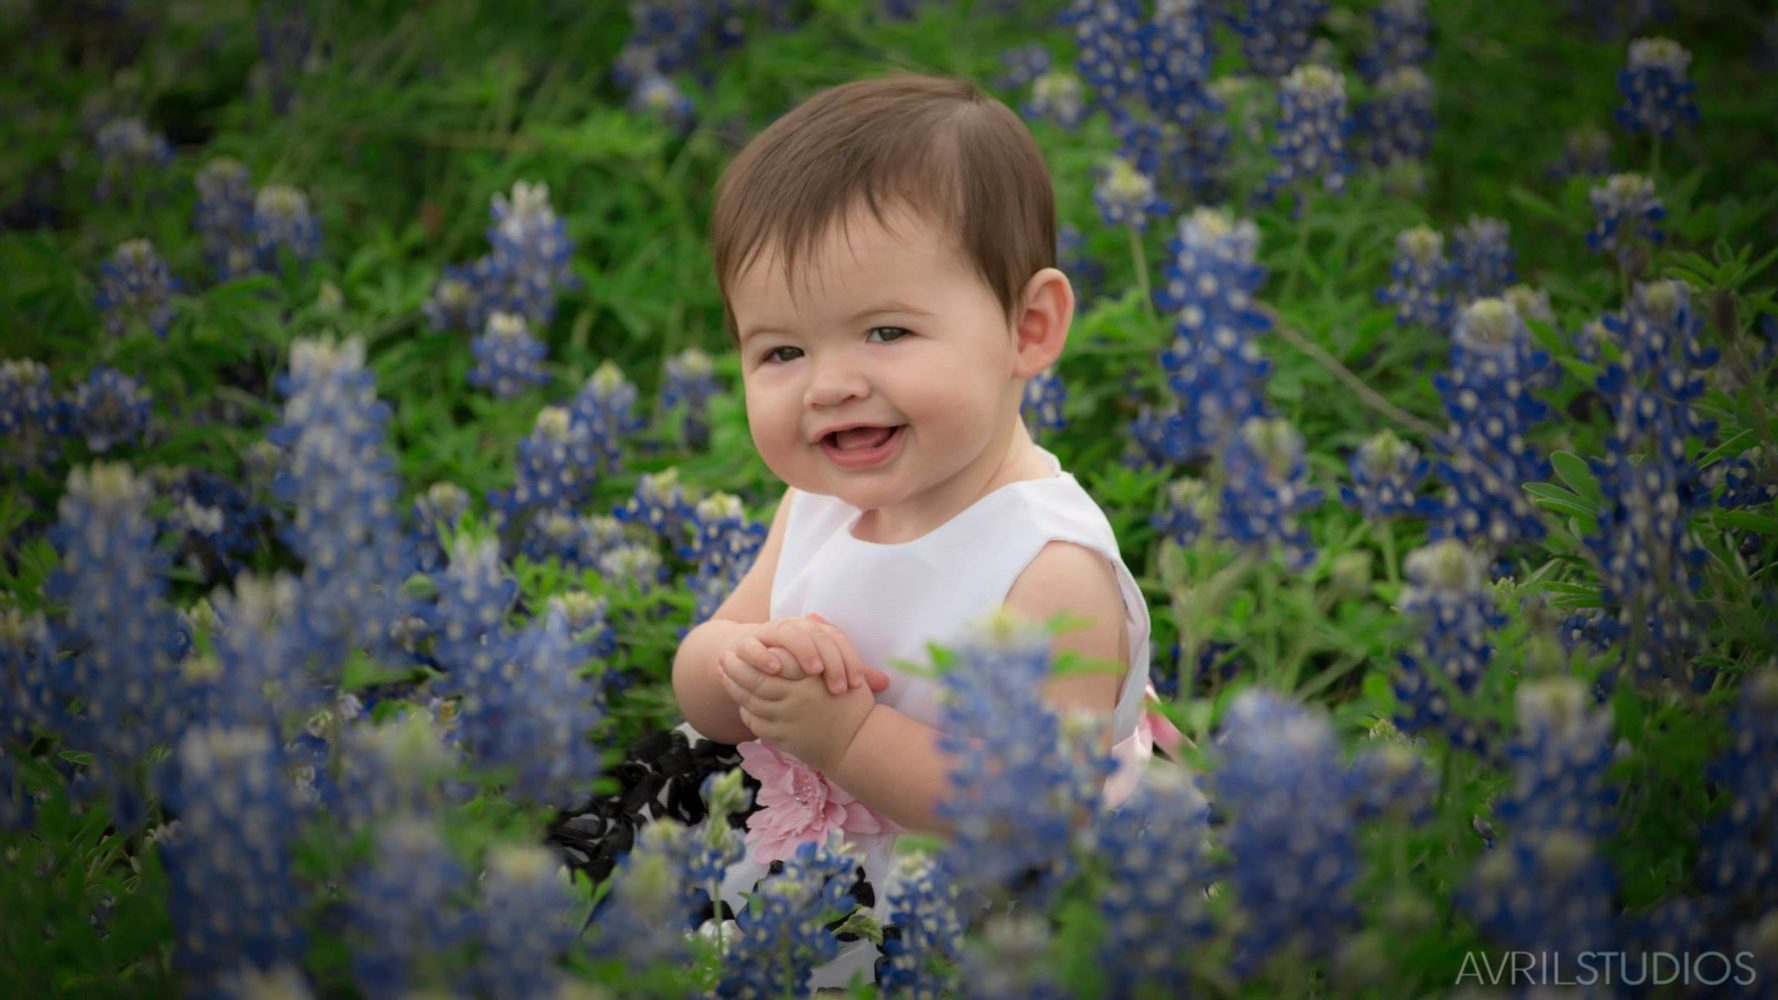 Baby in the Bluebonnets